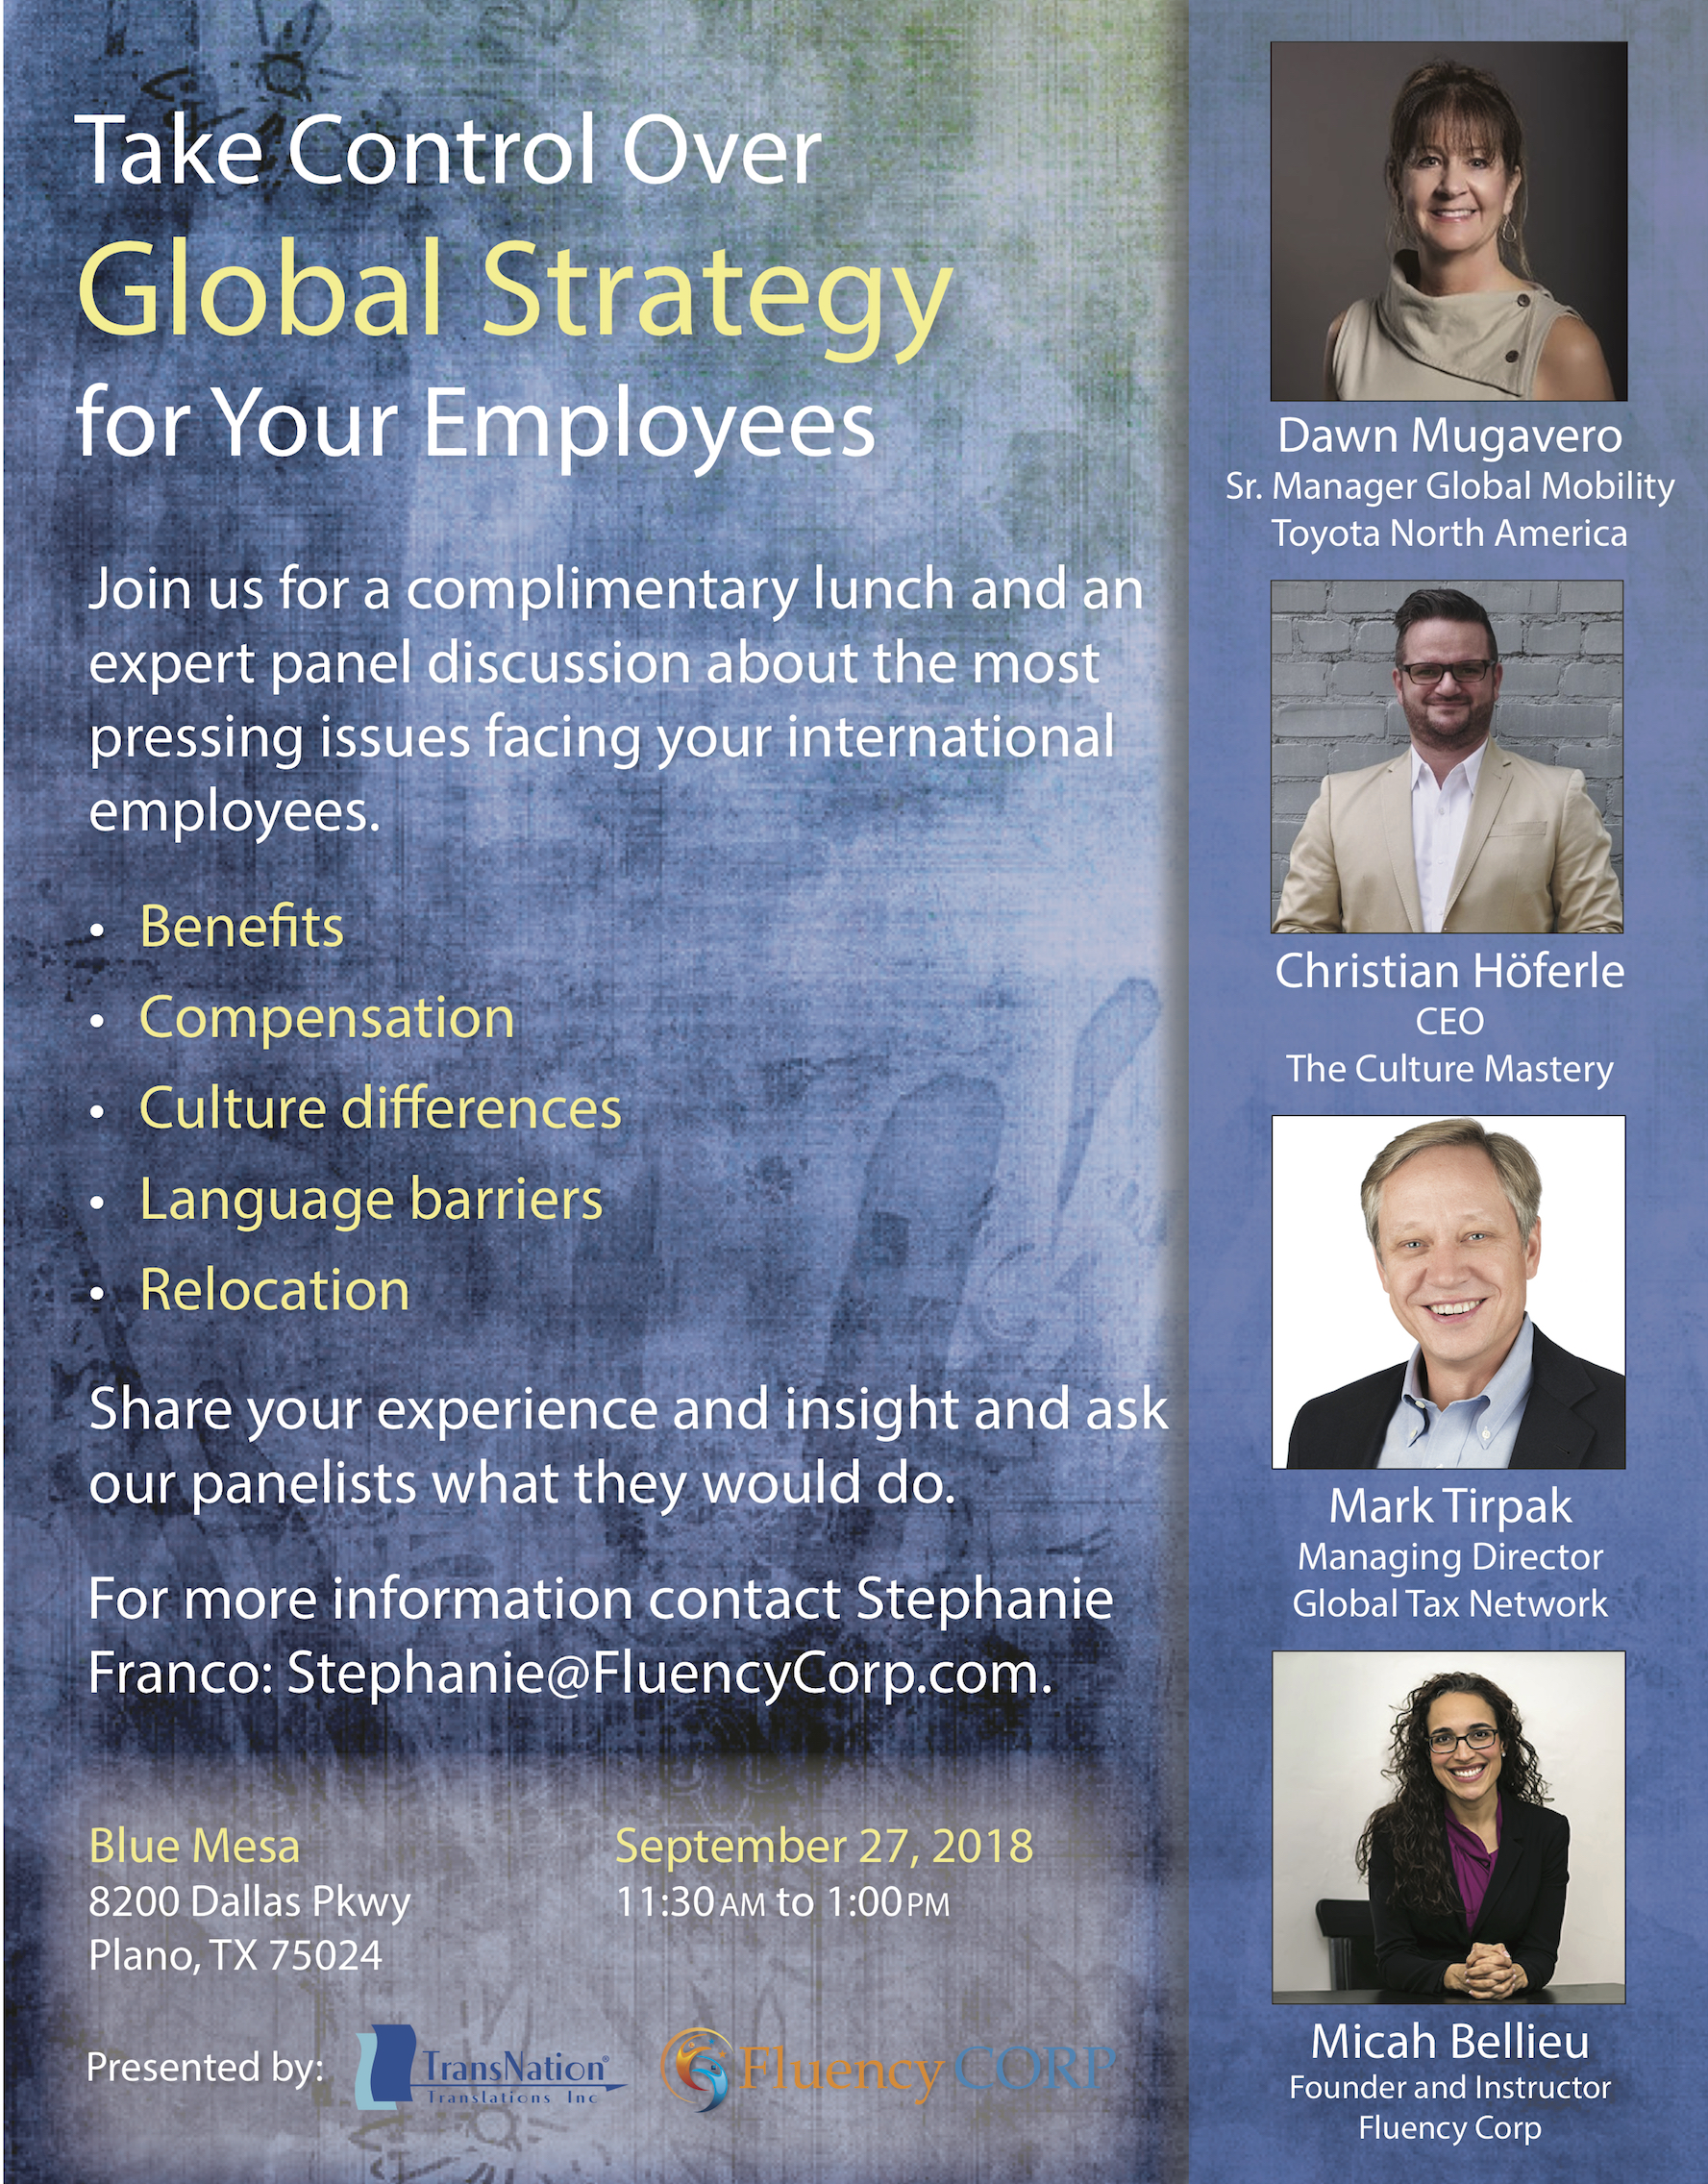 Global Strategy Luncheon